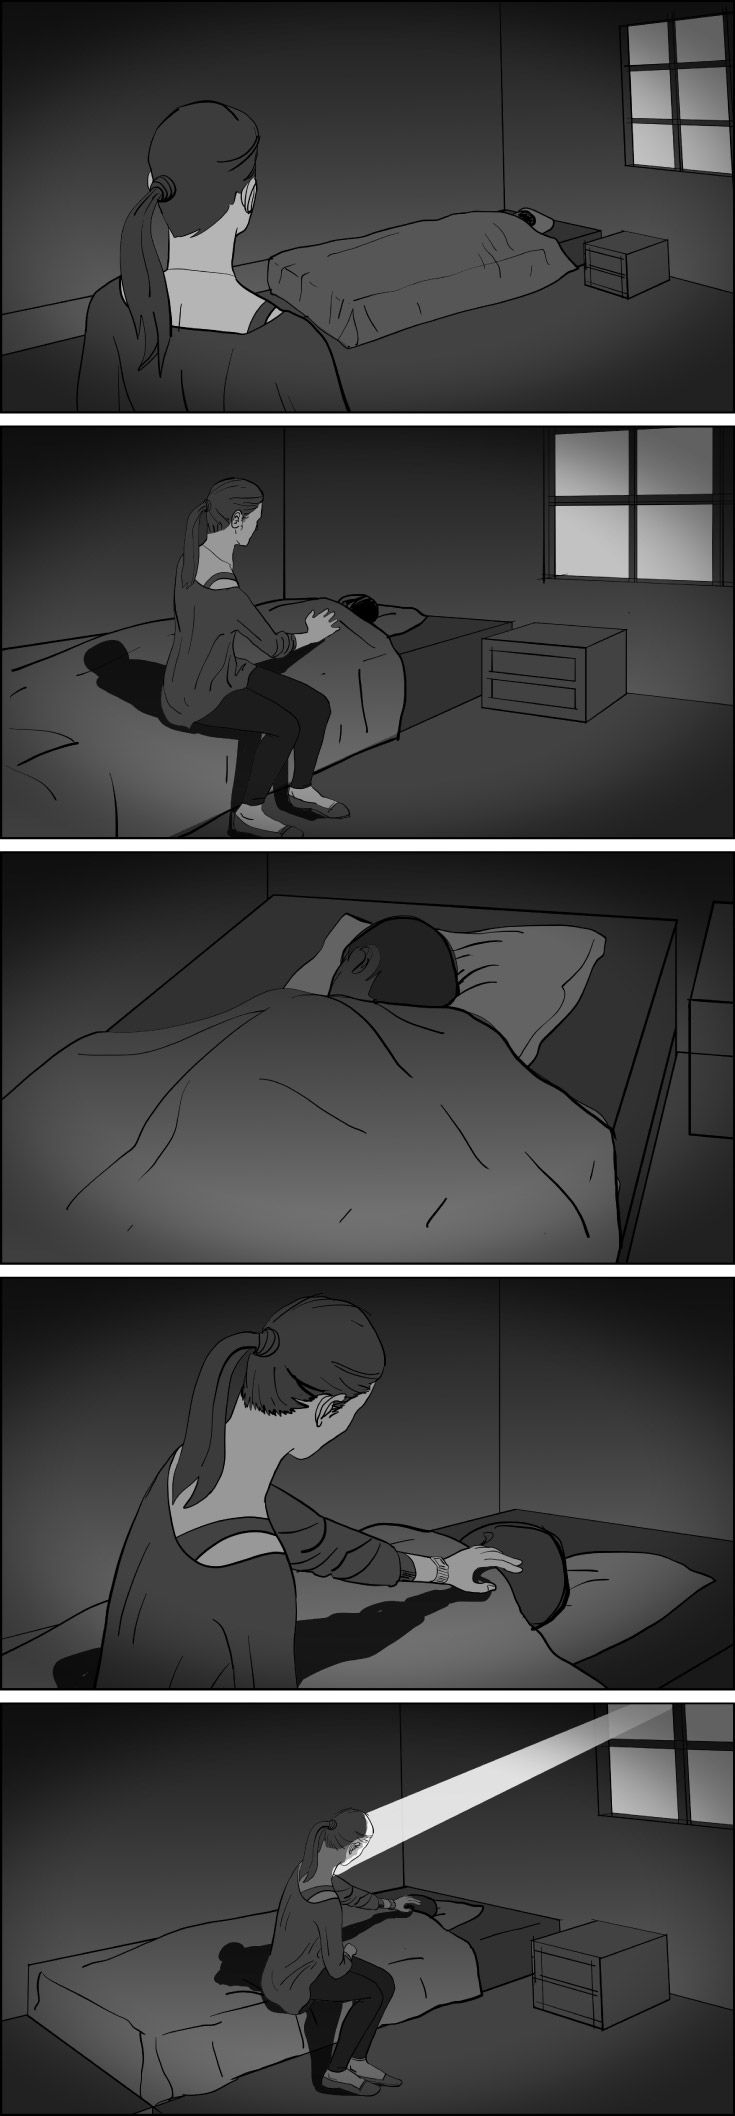 Storyboard sequence. Storyboards by storyboard artist Cuong Huynh. Got A Script? I'll Storyboard It.